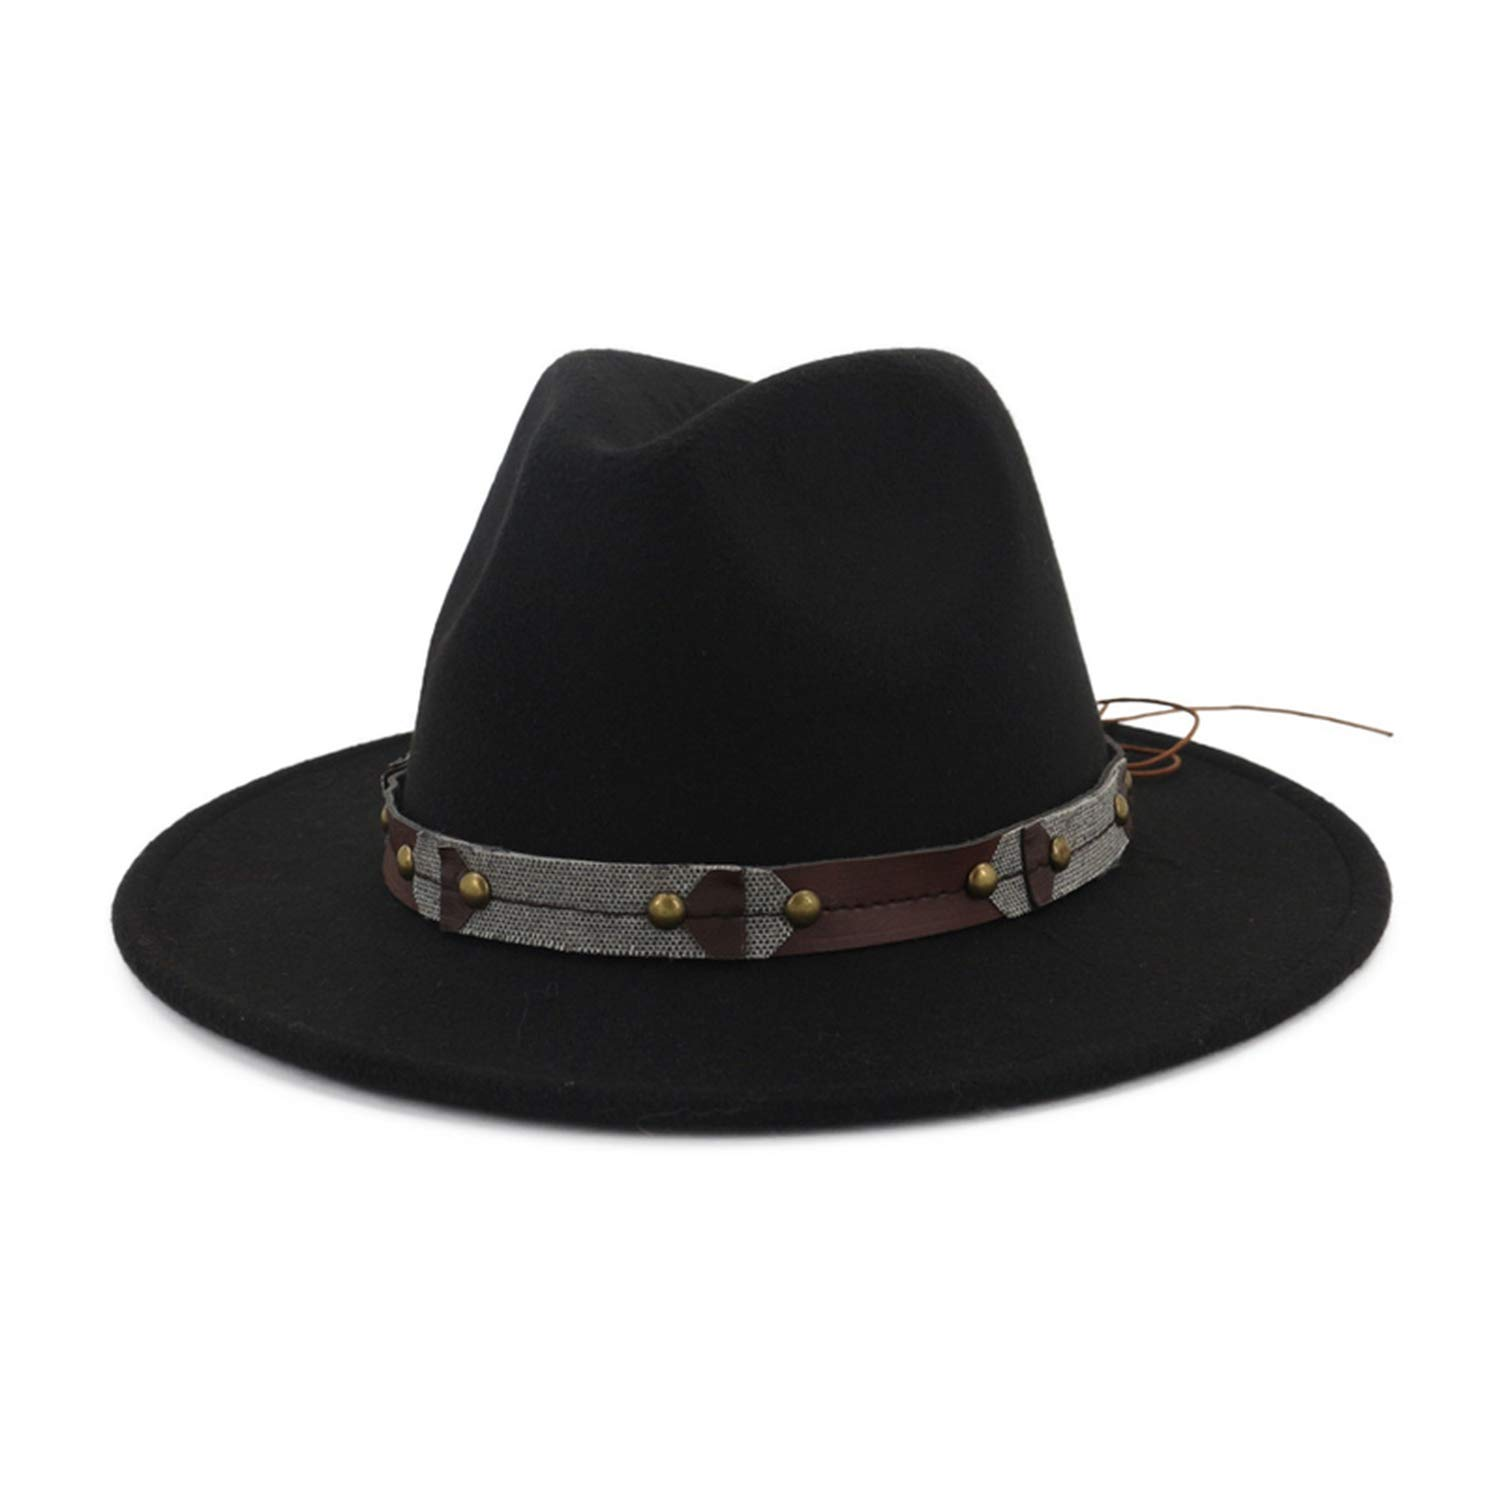 DOSOMI Wide Brim Wool Felt Fedora Men Women Panama Hats Jazz Formal Hat Trilby caps Leather Decorated